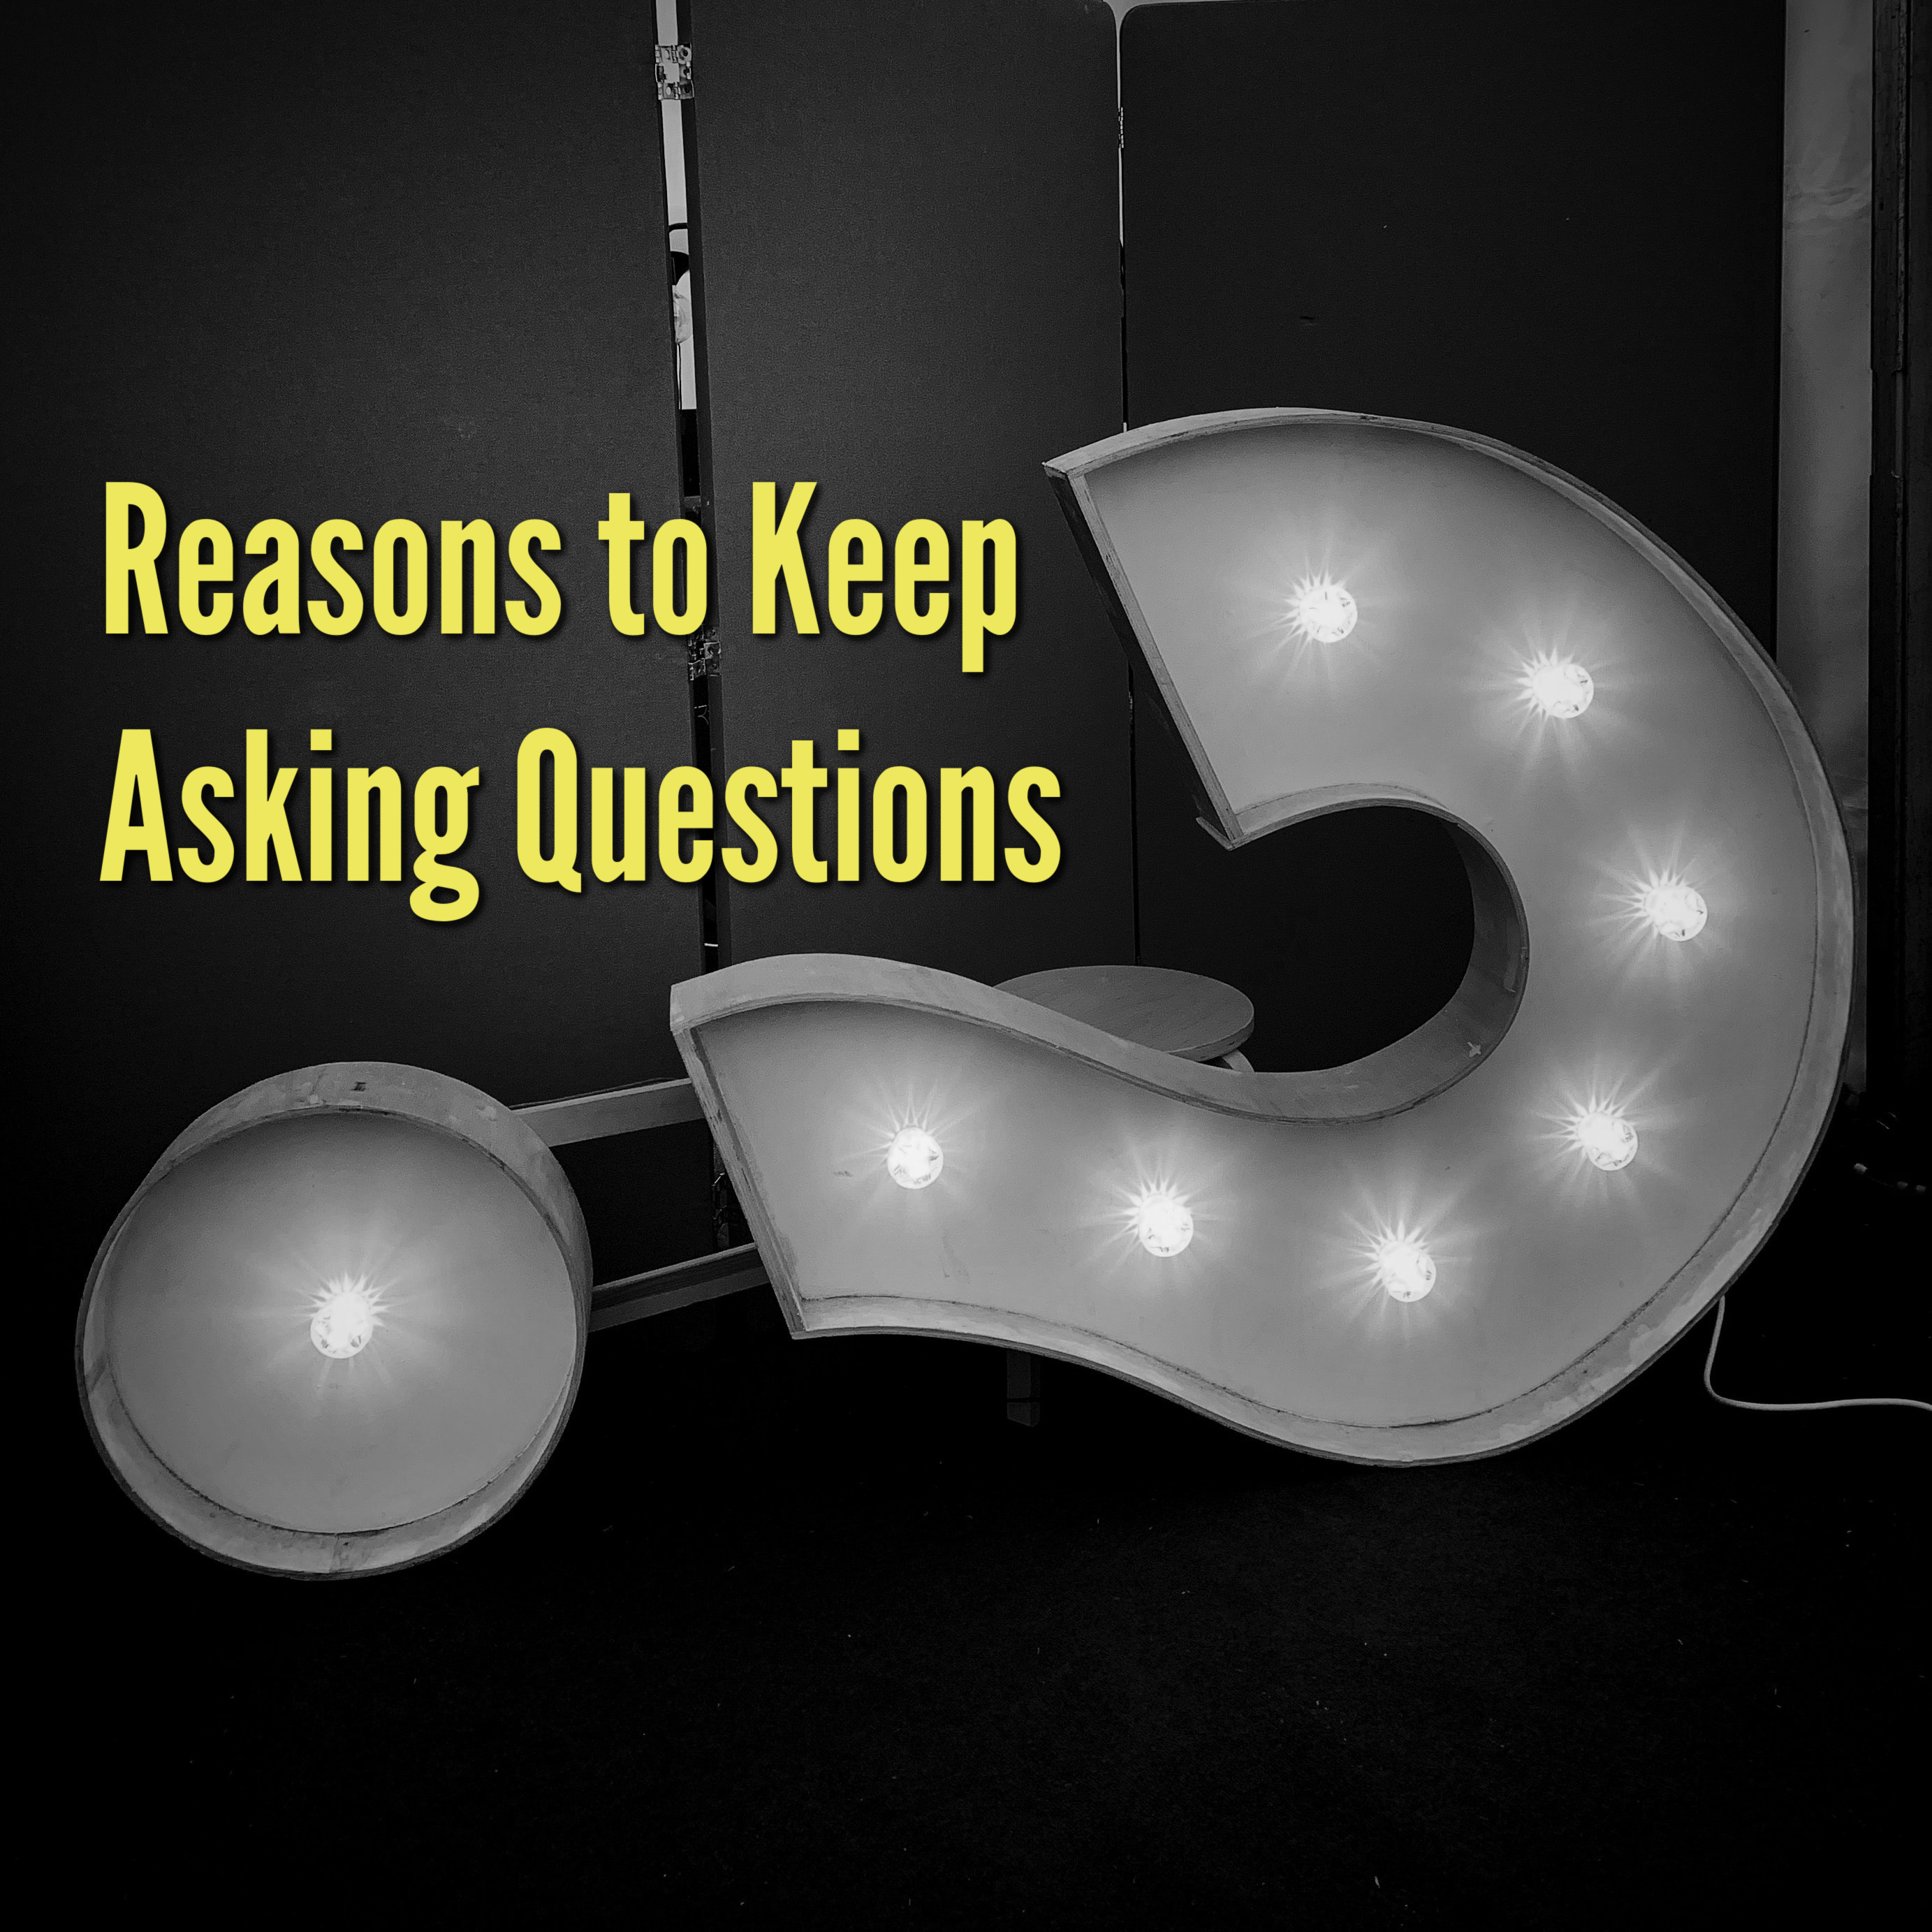 Reasons to Keep Asking Questions